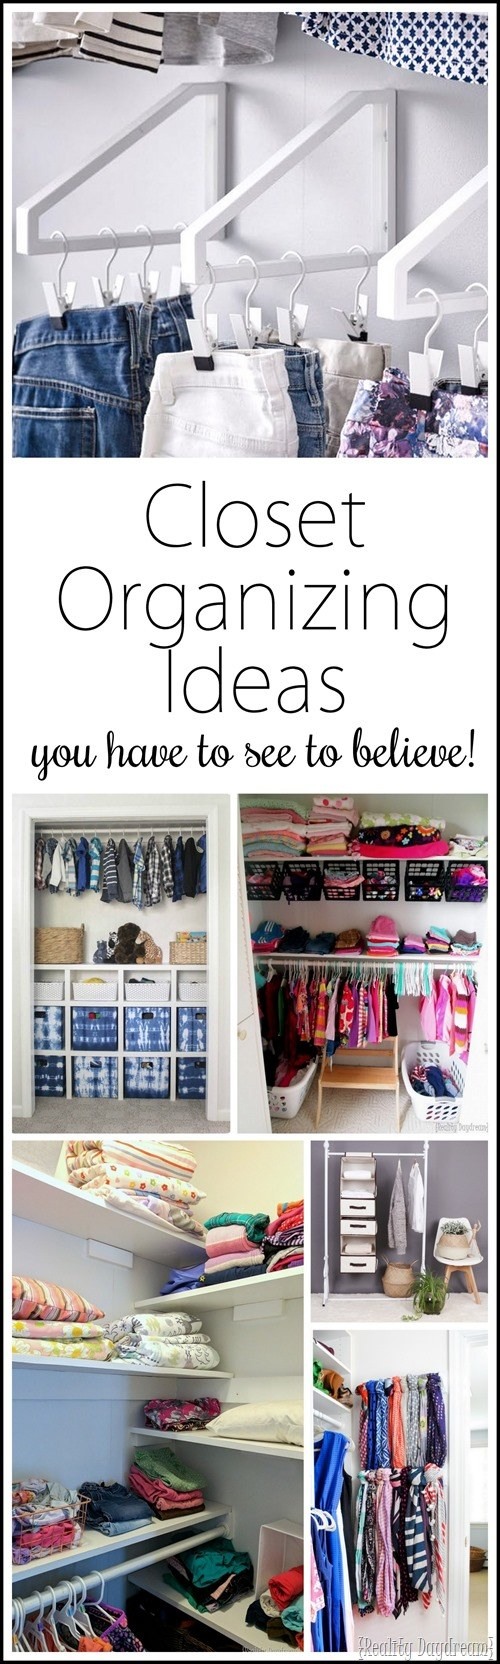 TONS of Brilliant Ideas for Closet Organization and maximizing space! {Reality Daydream}